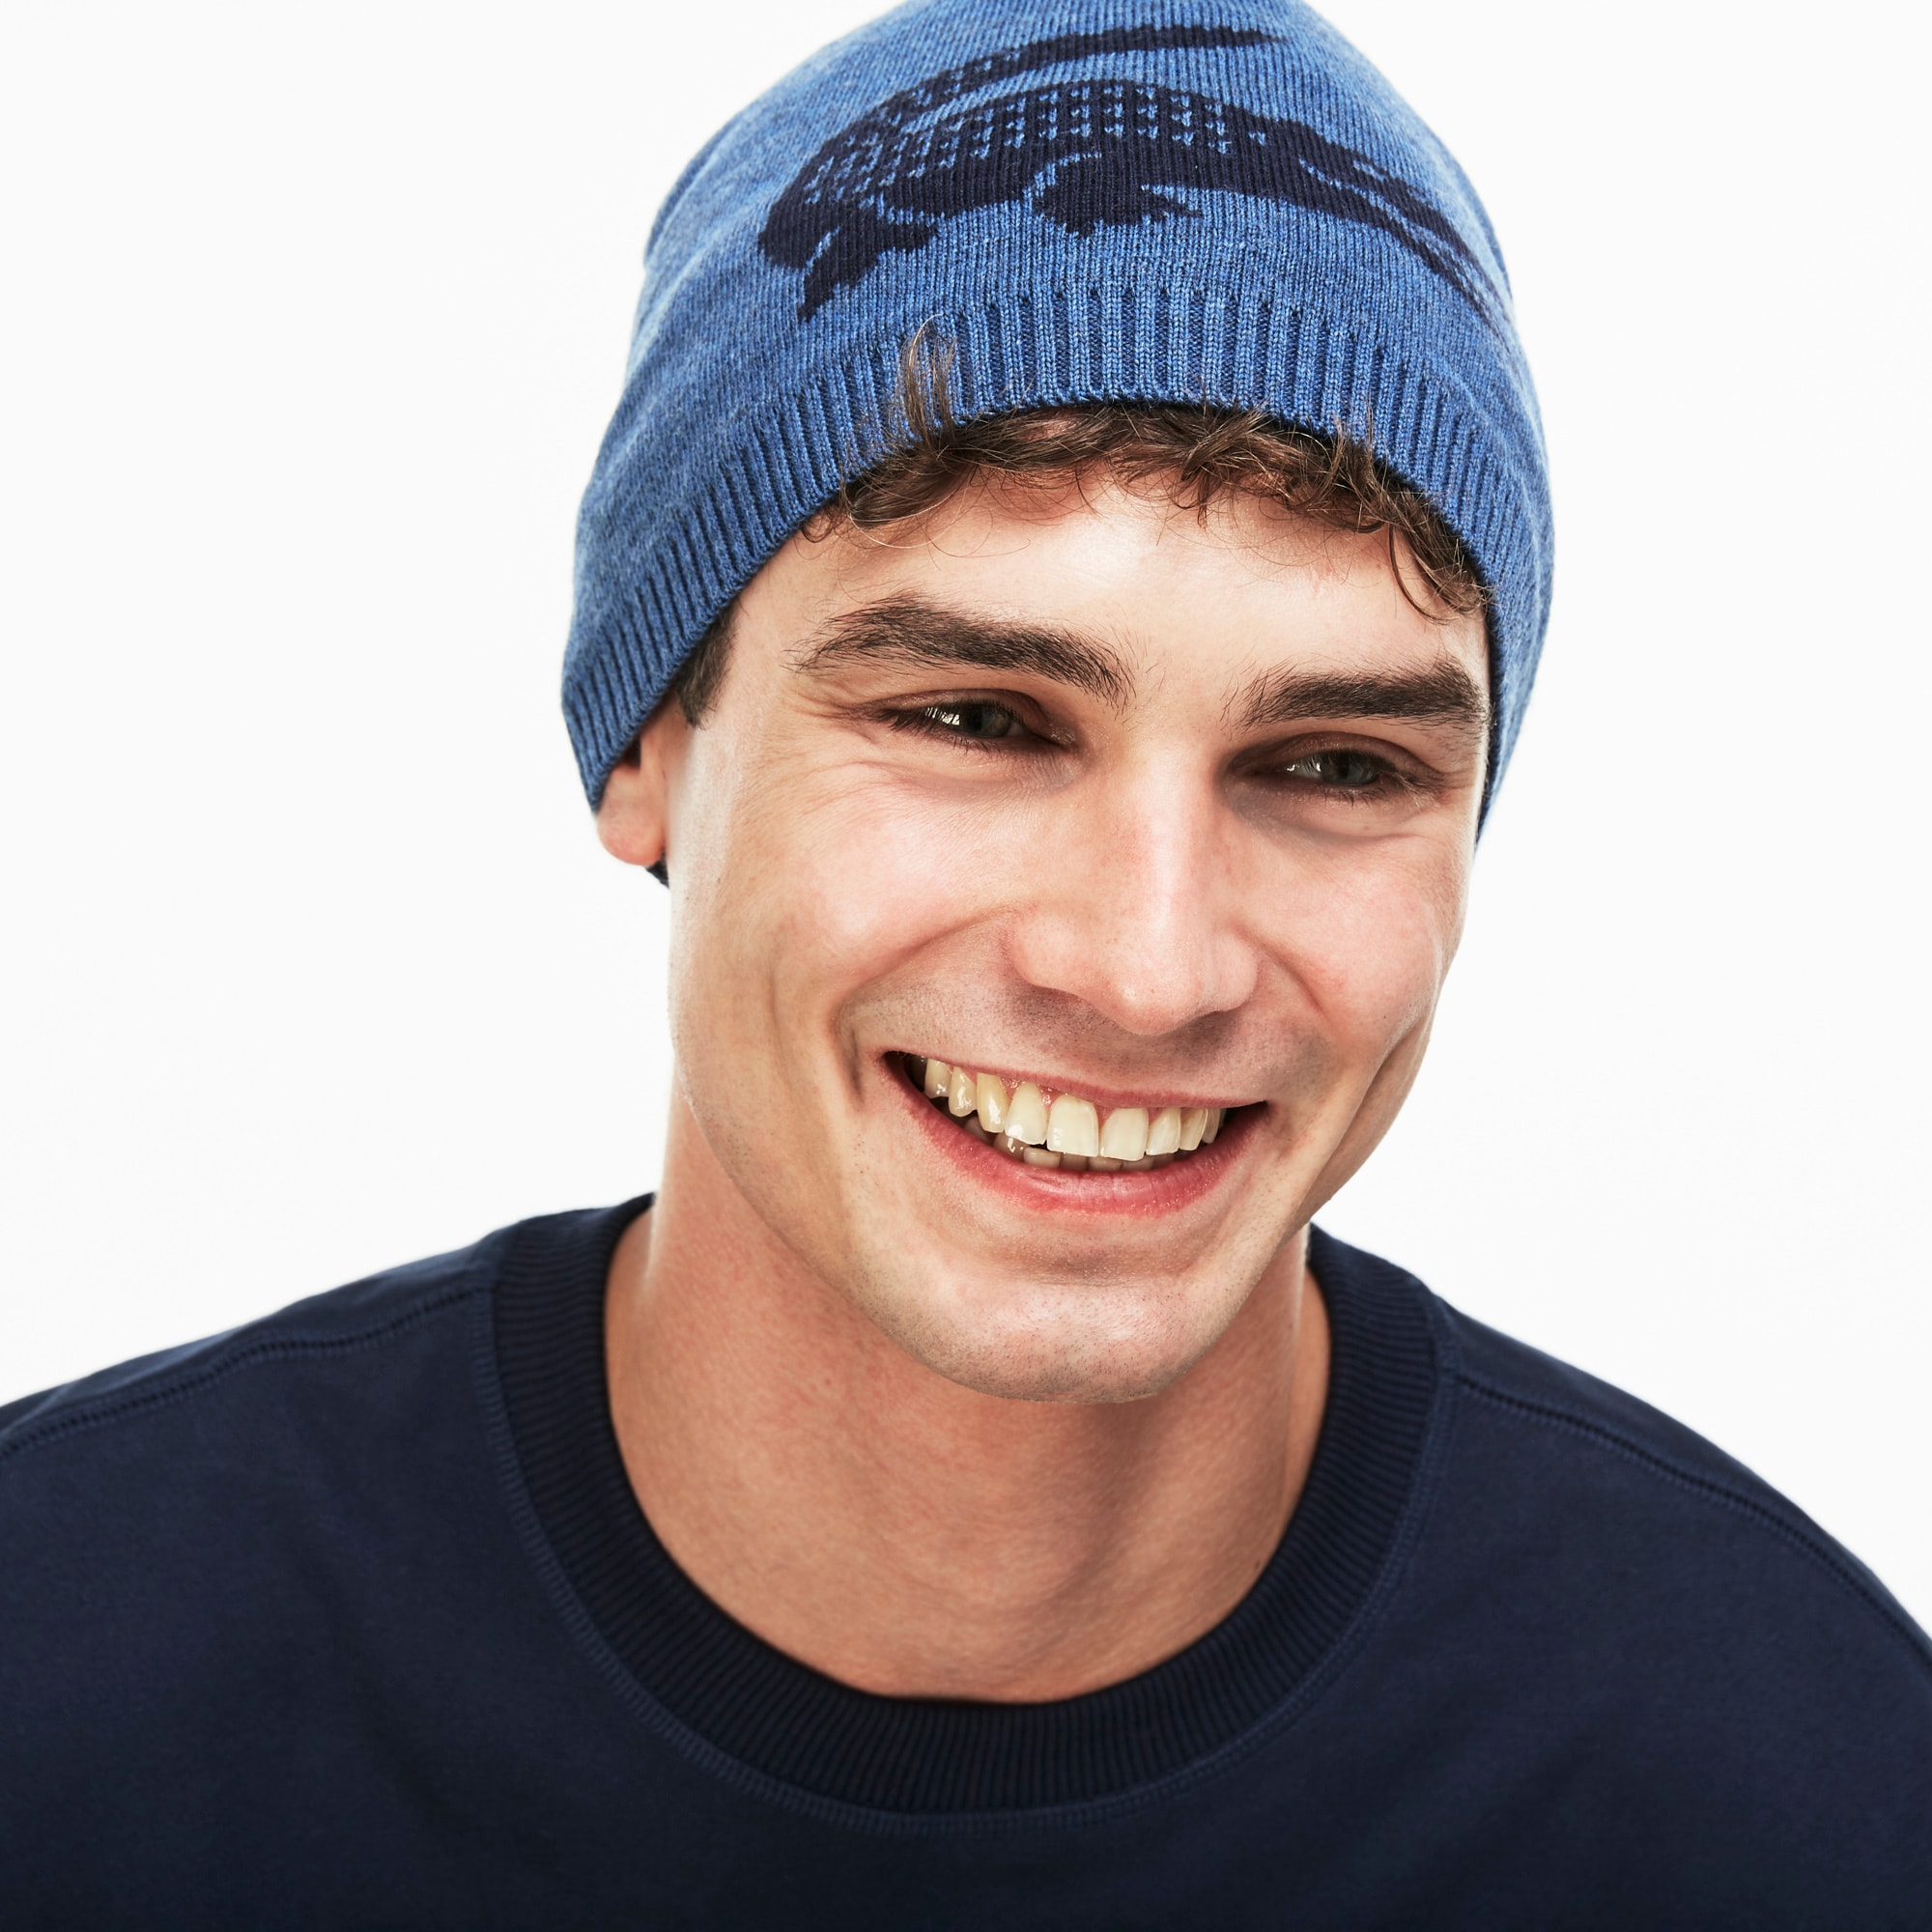 d10d32790 Men's Jacquard Crocodile Wool Beanie